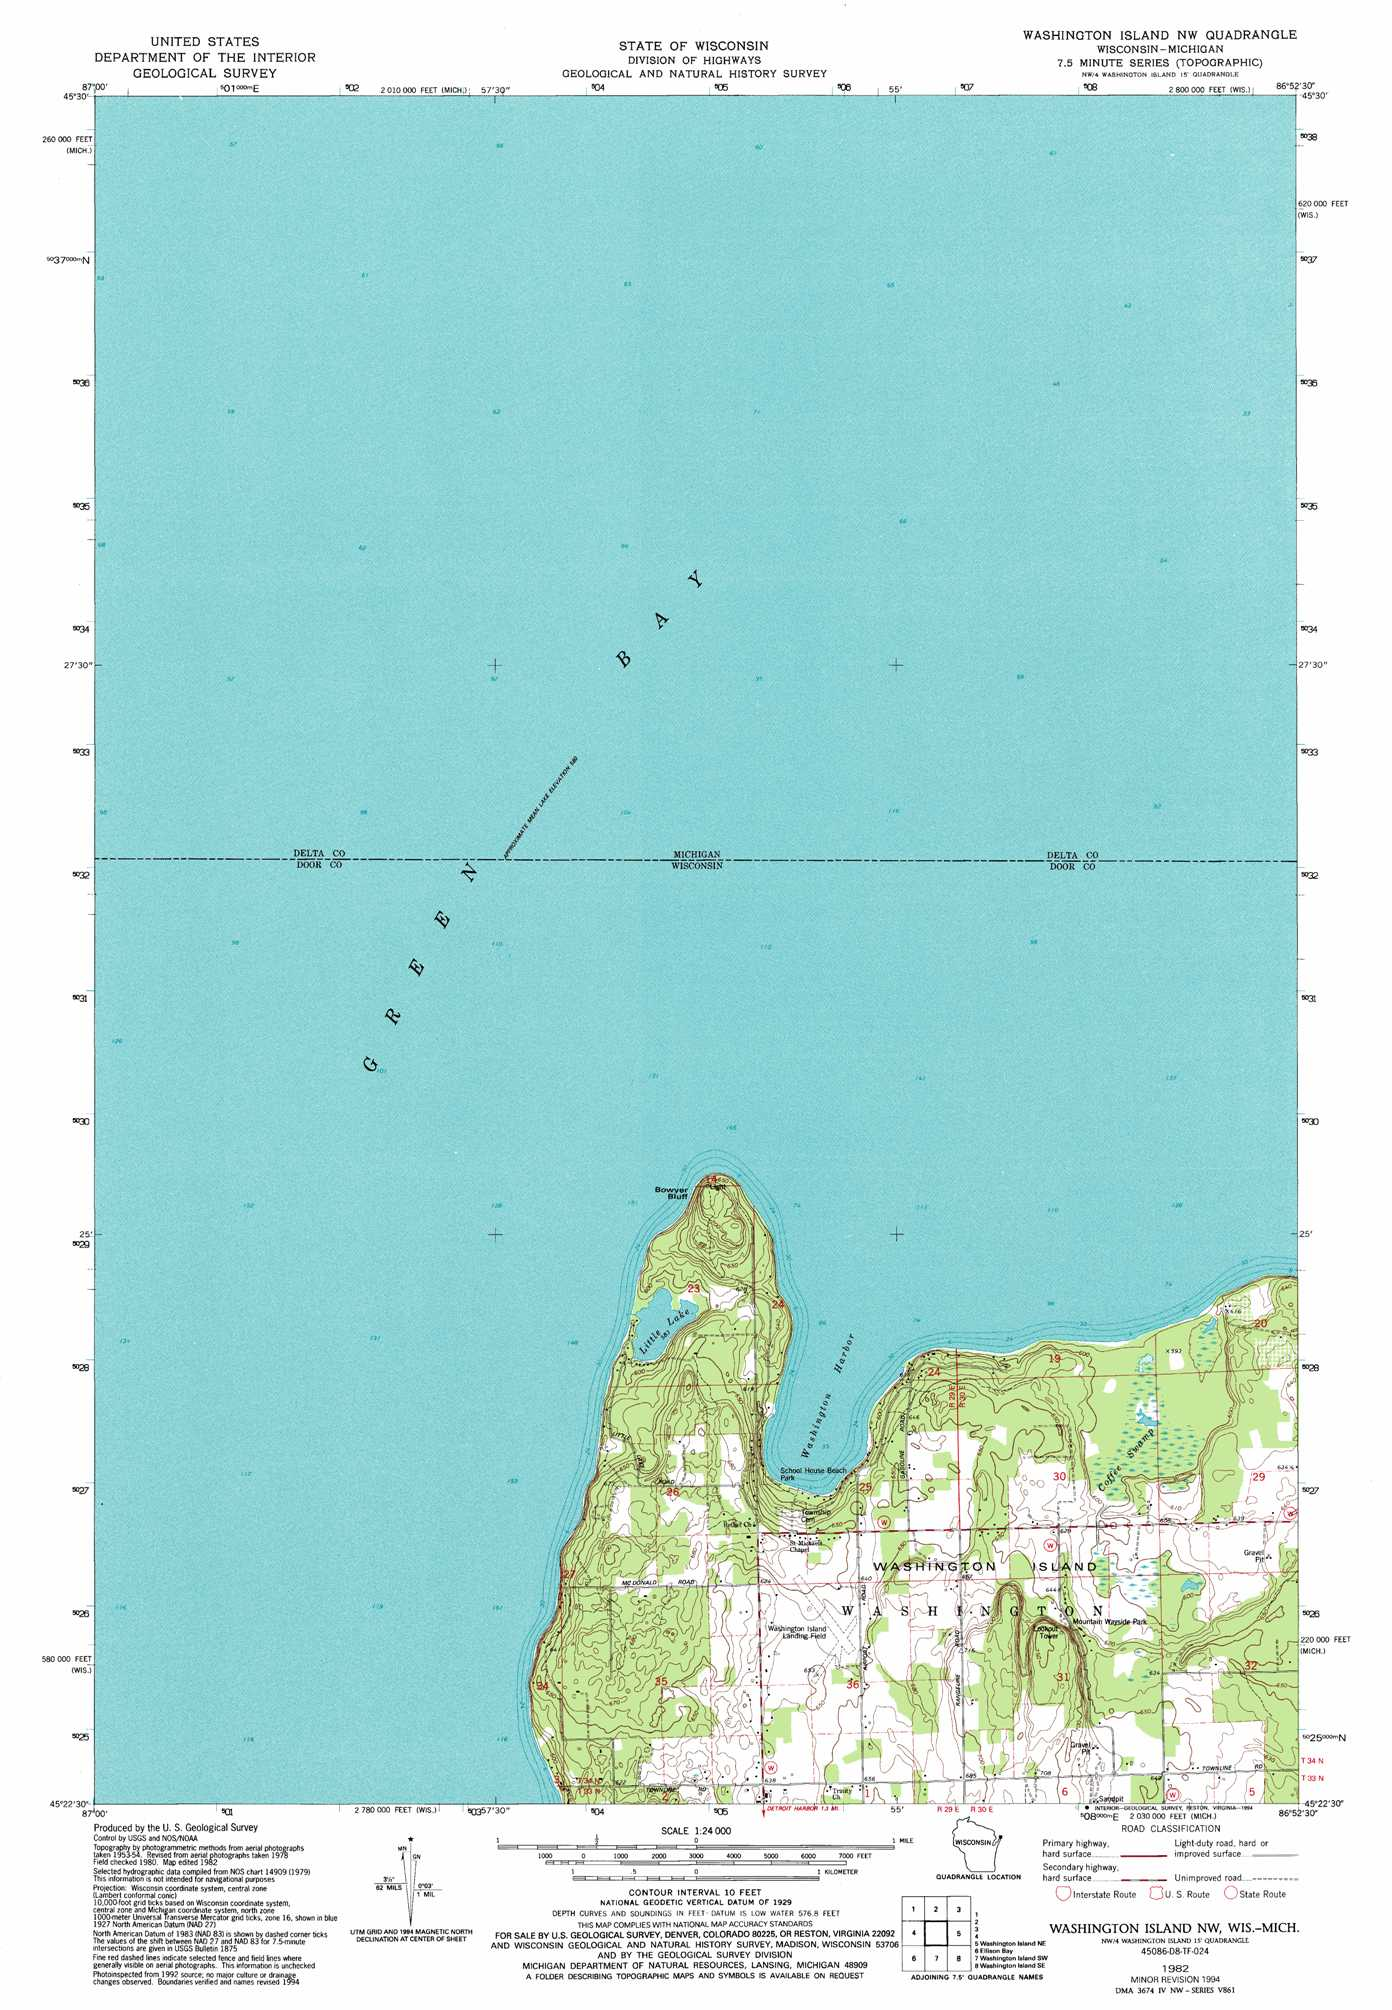 Washington Island Nw topographic map, WI, MI - USGS Topo